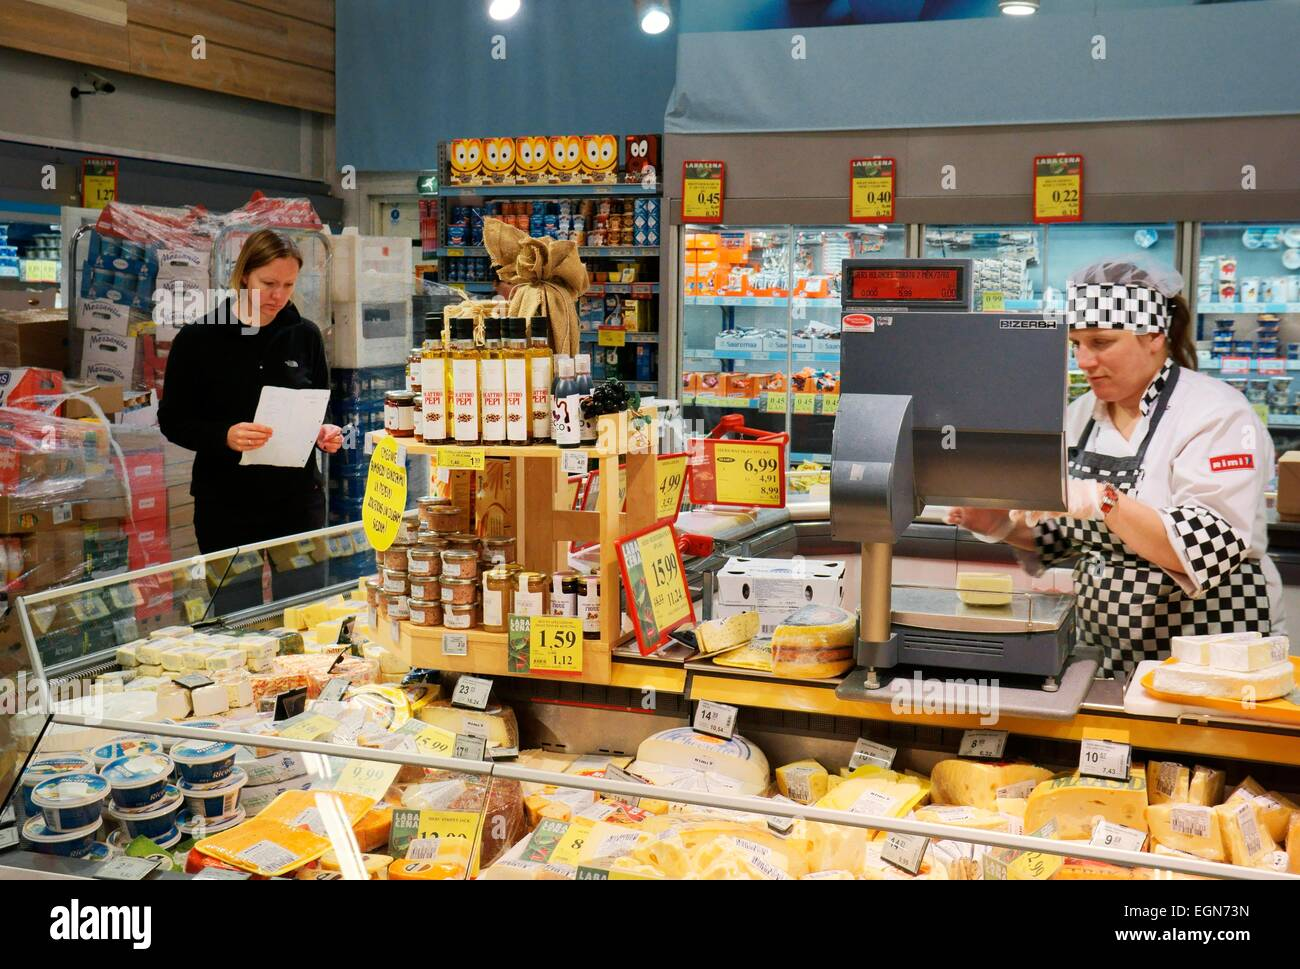 Riga Latvia. Interior of Rimi hypermarket Latvian store. Assistant and customer at cheese dairy deli counter with - Stock Image